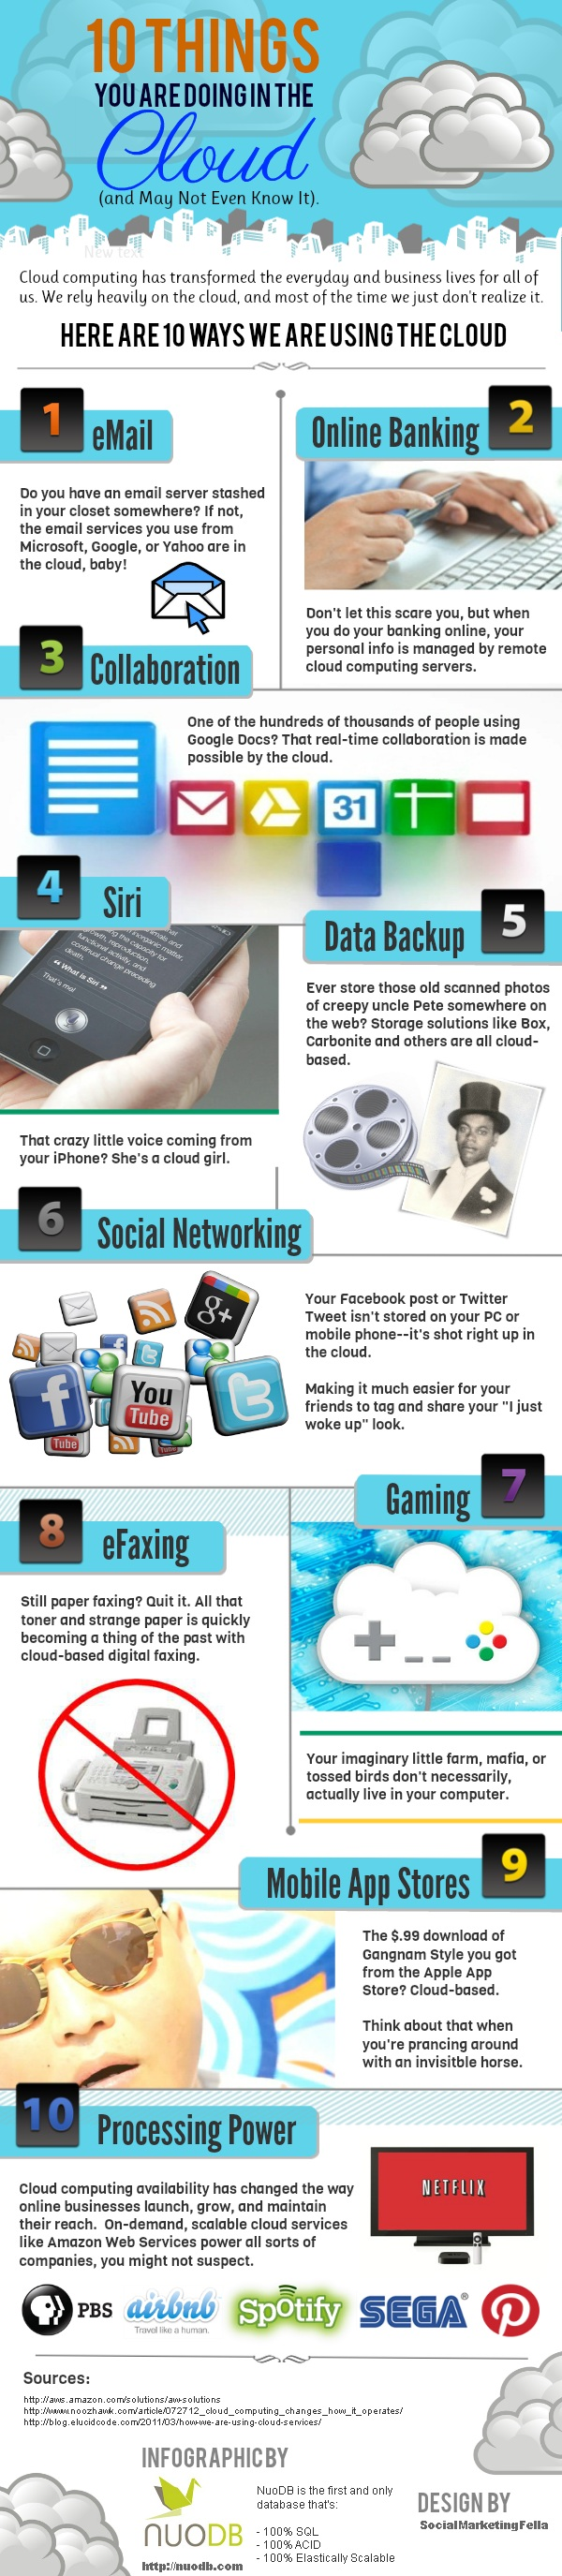 10 common uses of cloud comuting